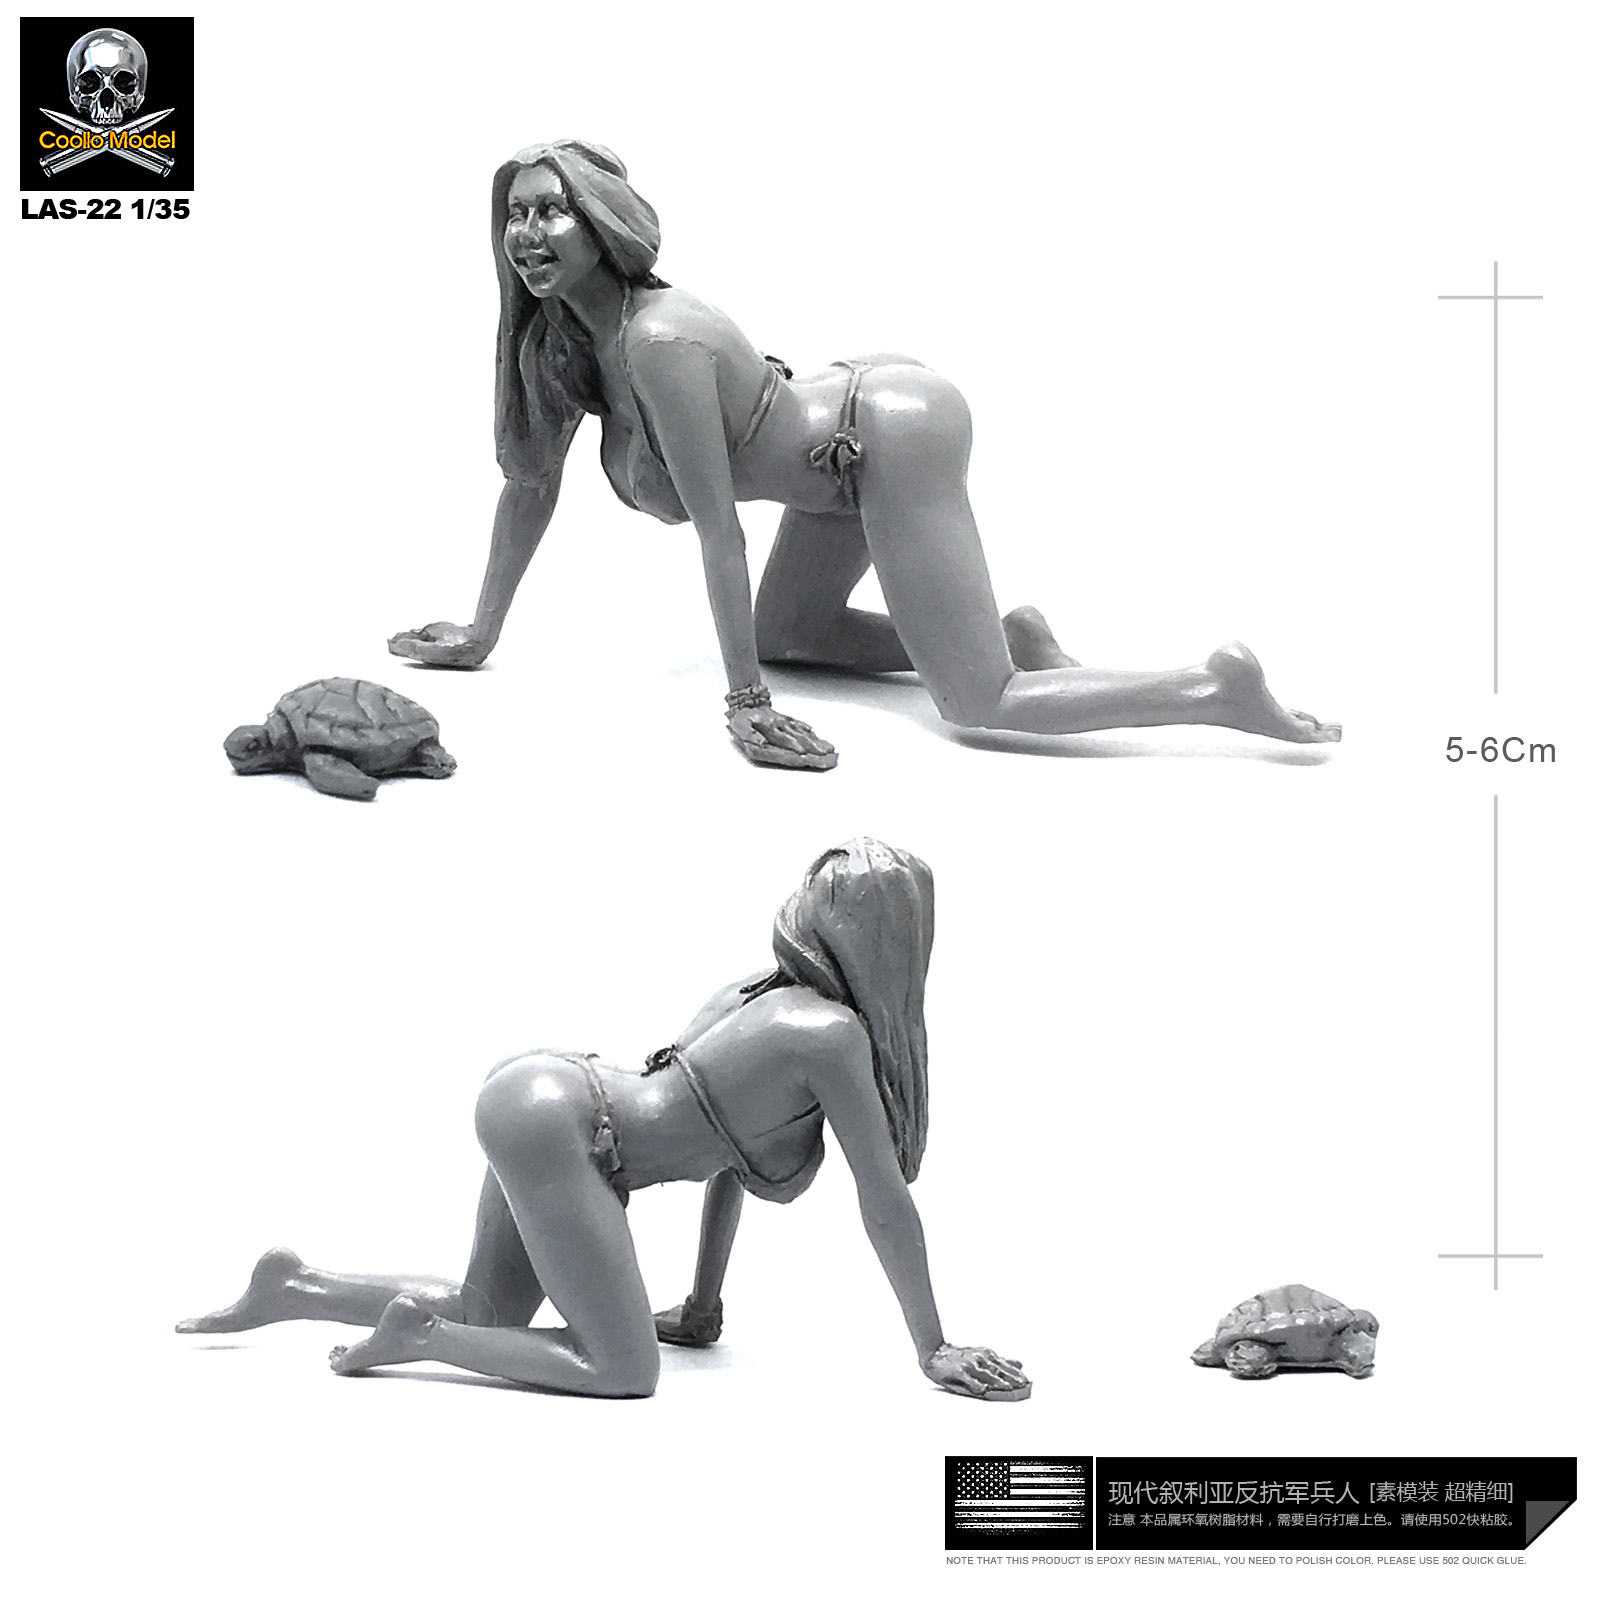 1/35 Resin Kits Foreign Sexy Bikini Beauty Resin Soldier  Self-assembled Las-22